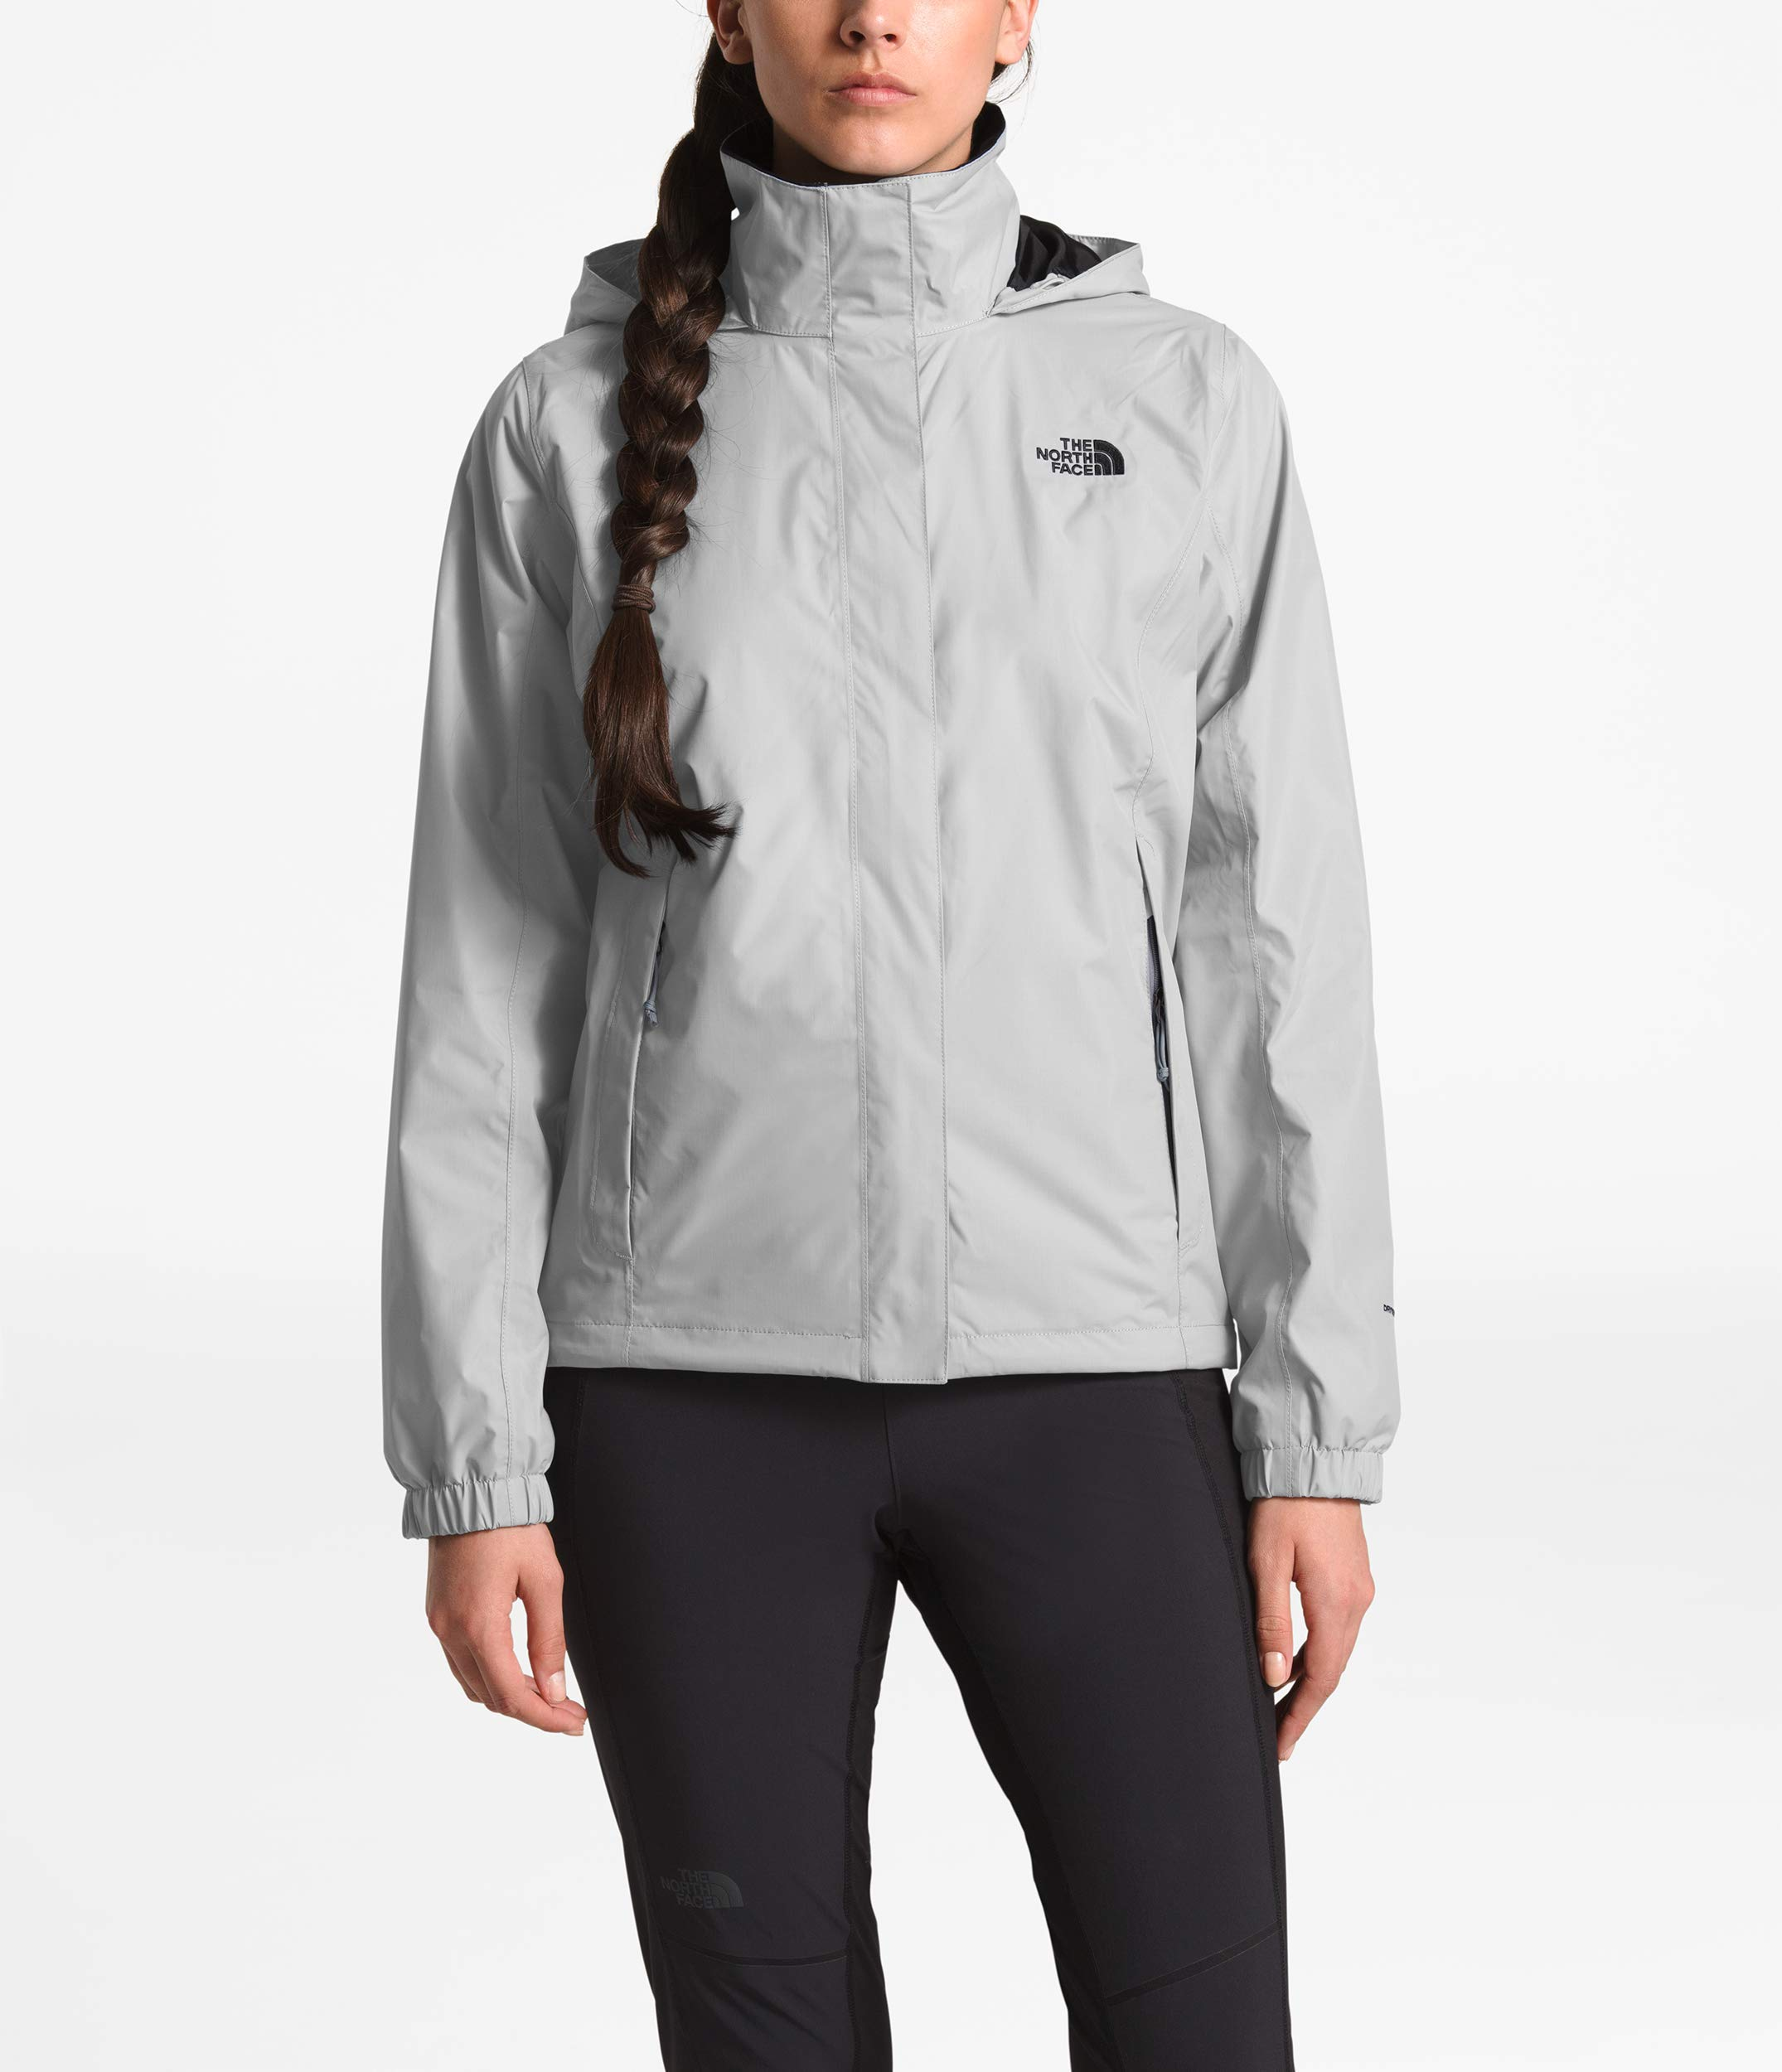 The North Face Women Resolve 2 Jacket - Mid Grey & TNF Black - M by The North Face (Image #5)